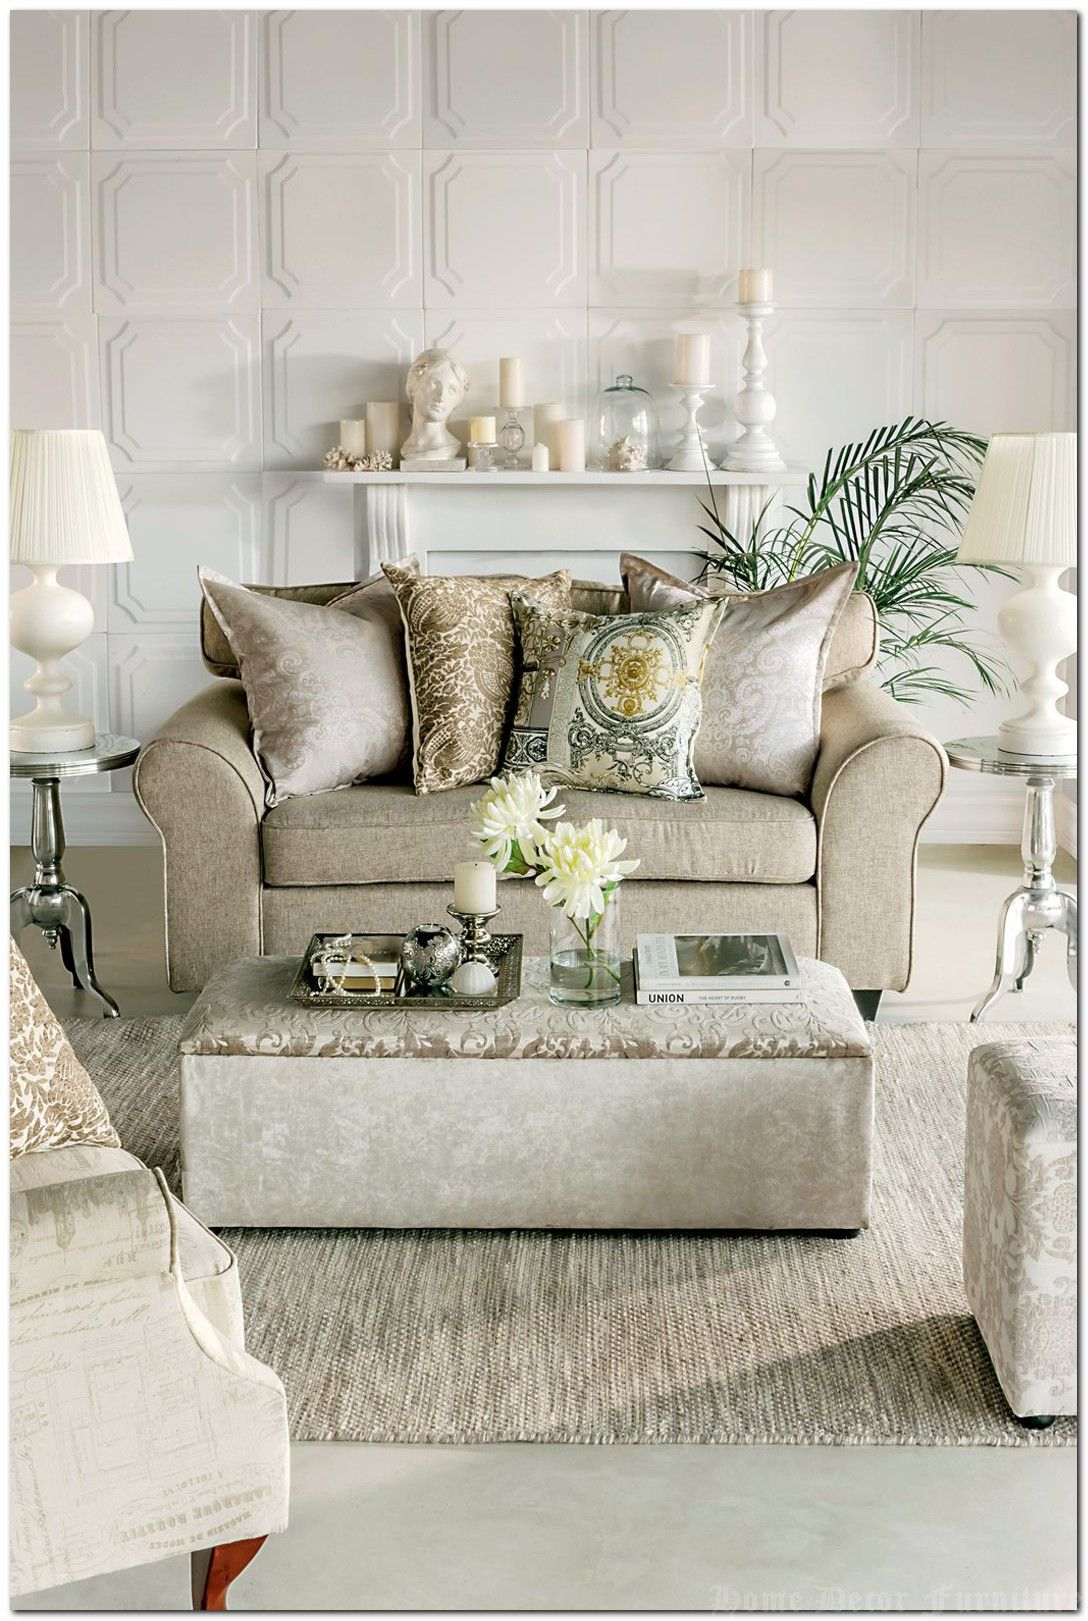 7 Tips To Reinvent Your Home Decor Furniture And Win